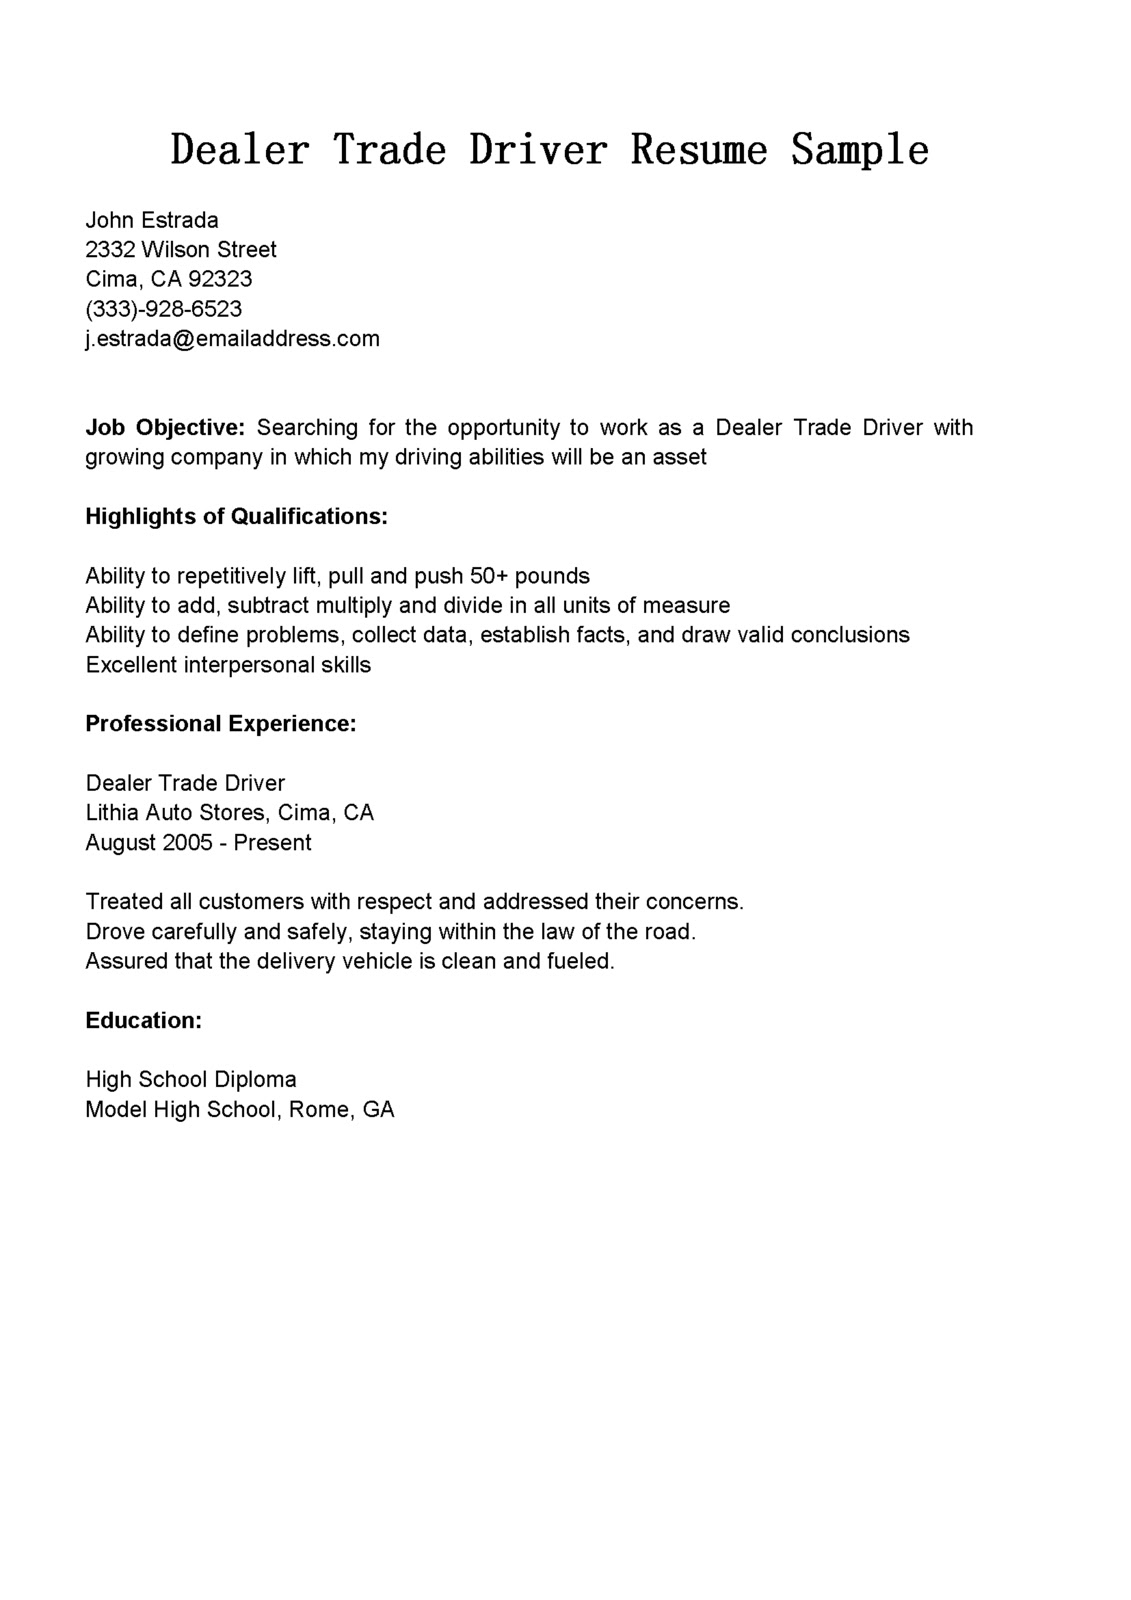 resume sample for cdl driver create professional resumes online resume sample for cdl driver truck driver resume example resume writing resume driver resumes dealer trade